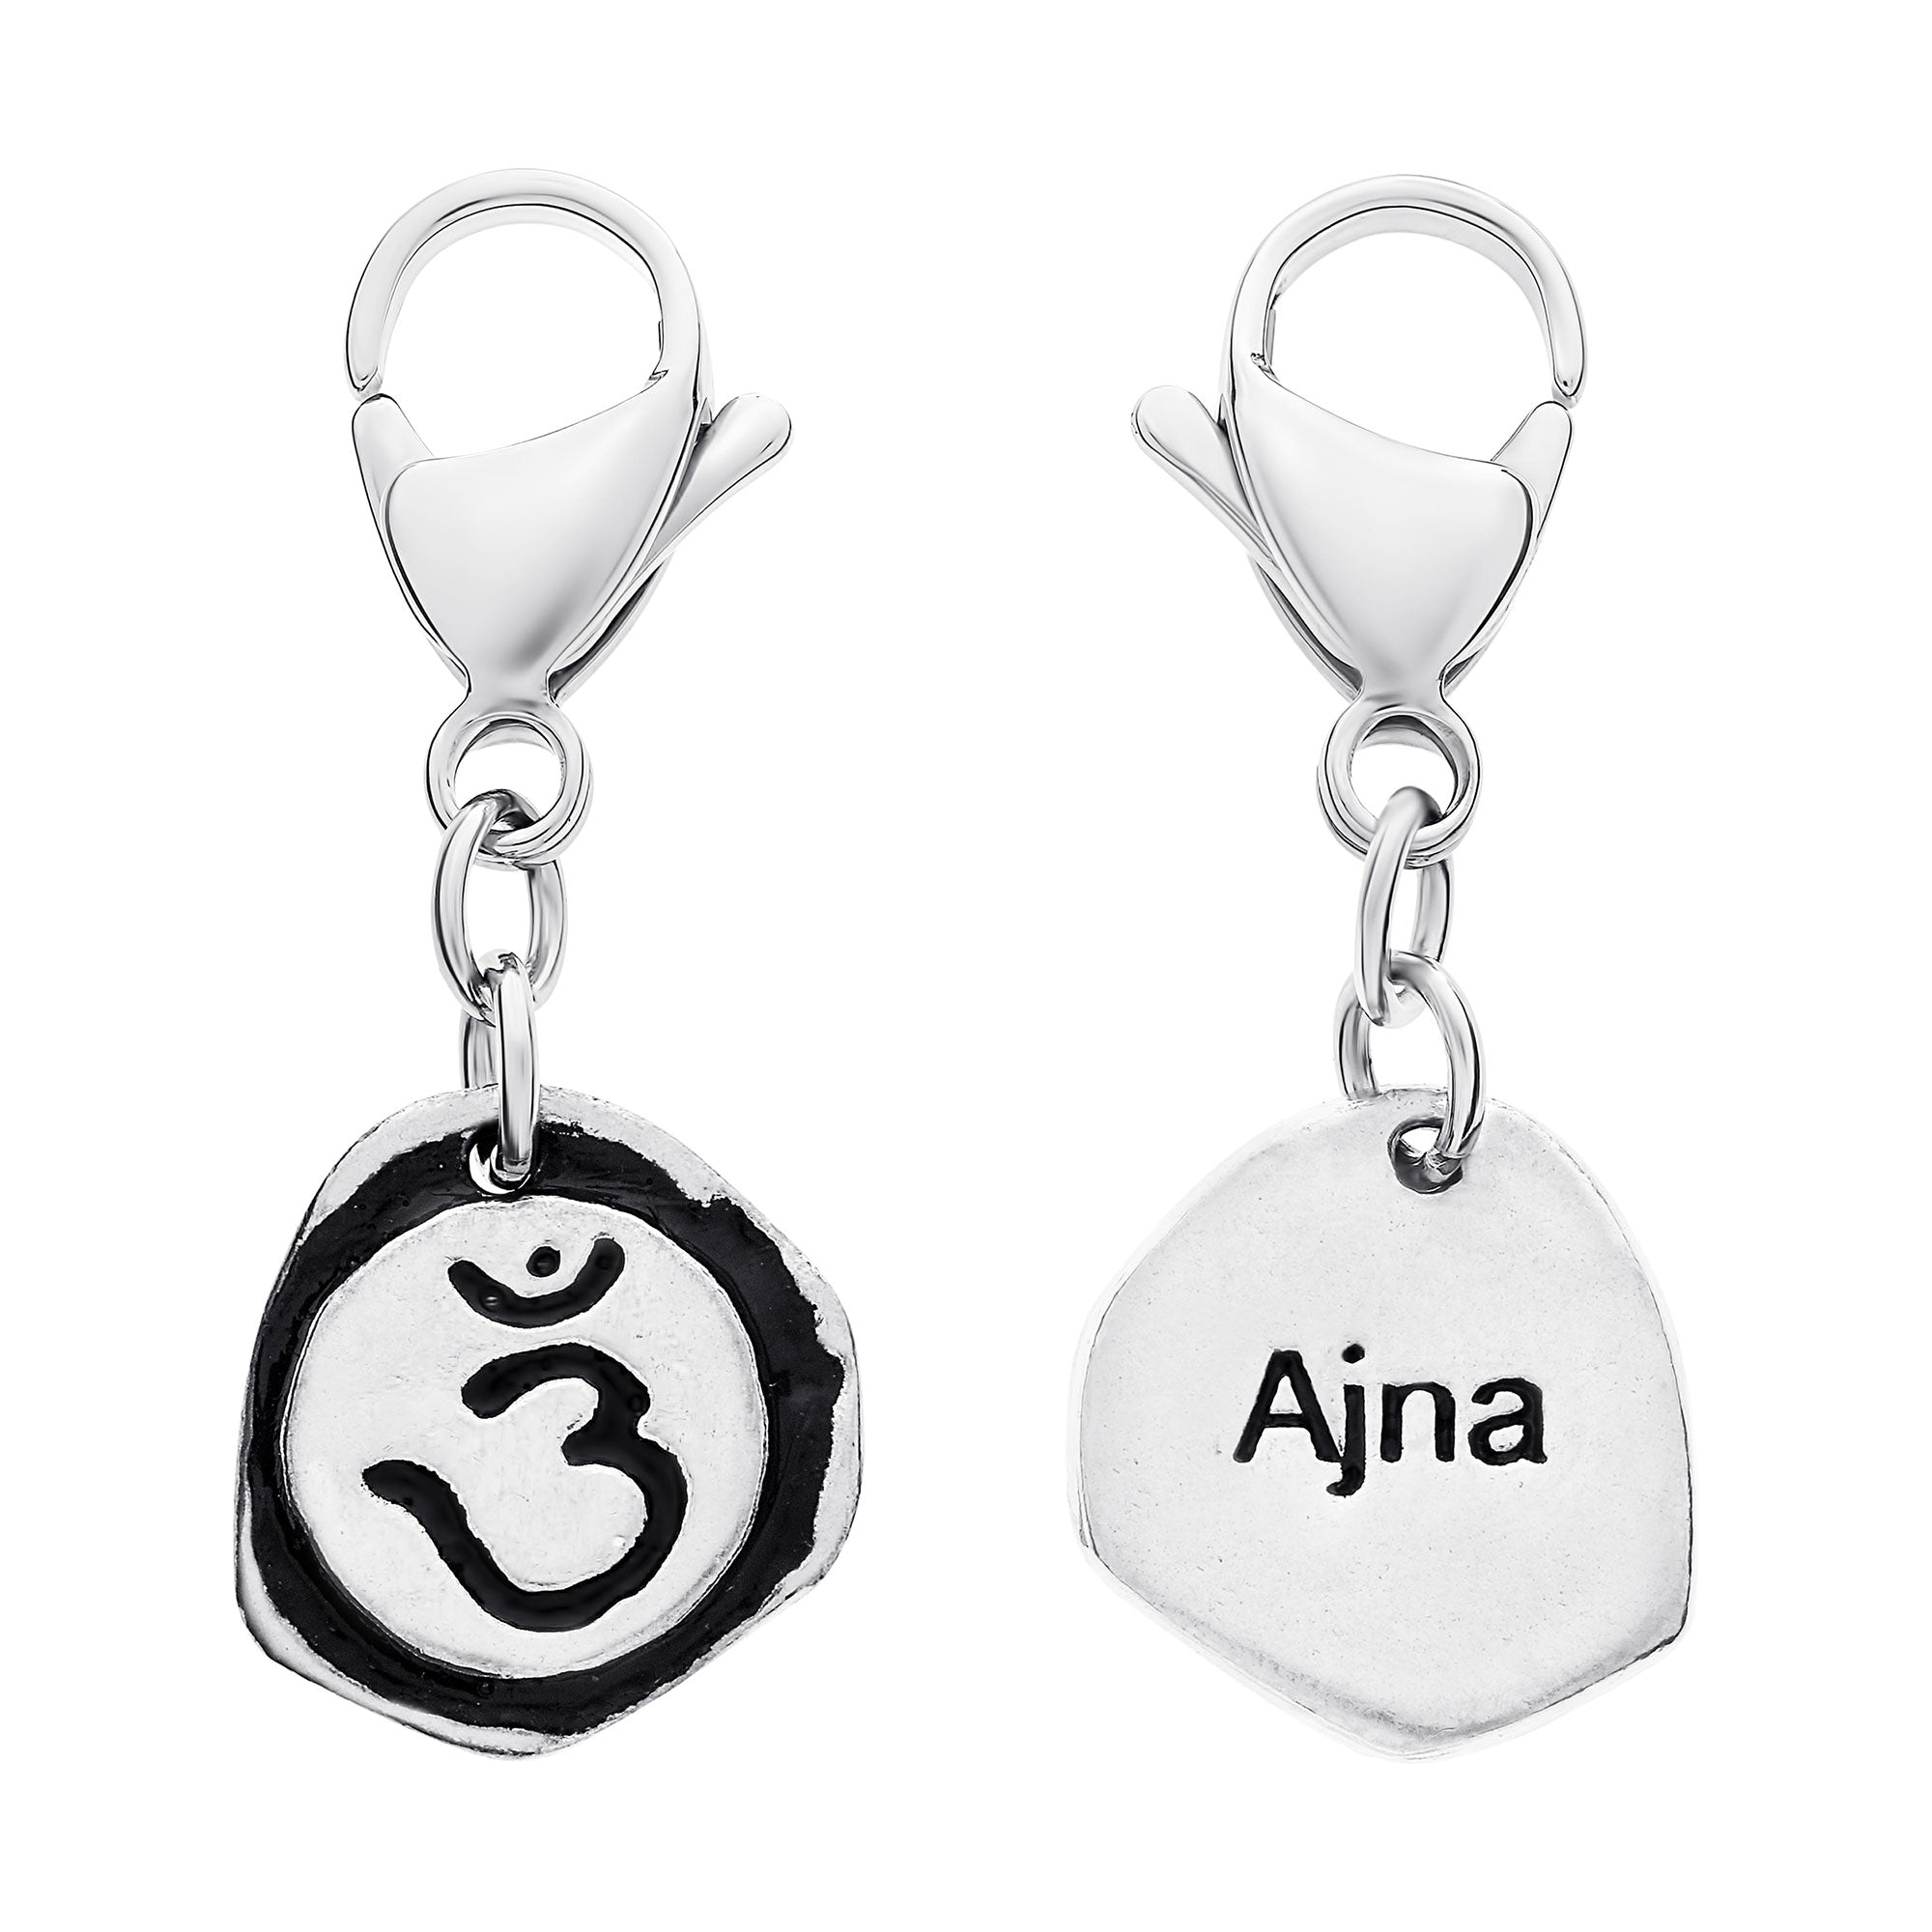 THIRD EYE CHAKRA: Detachable Ajna charm